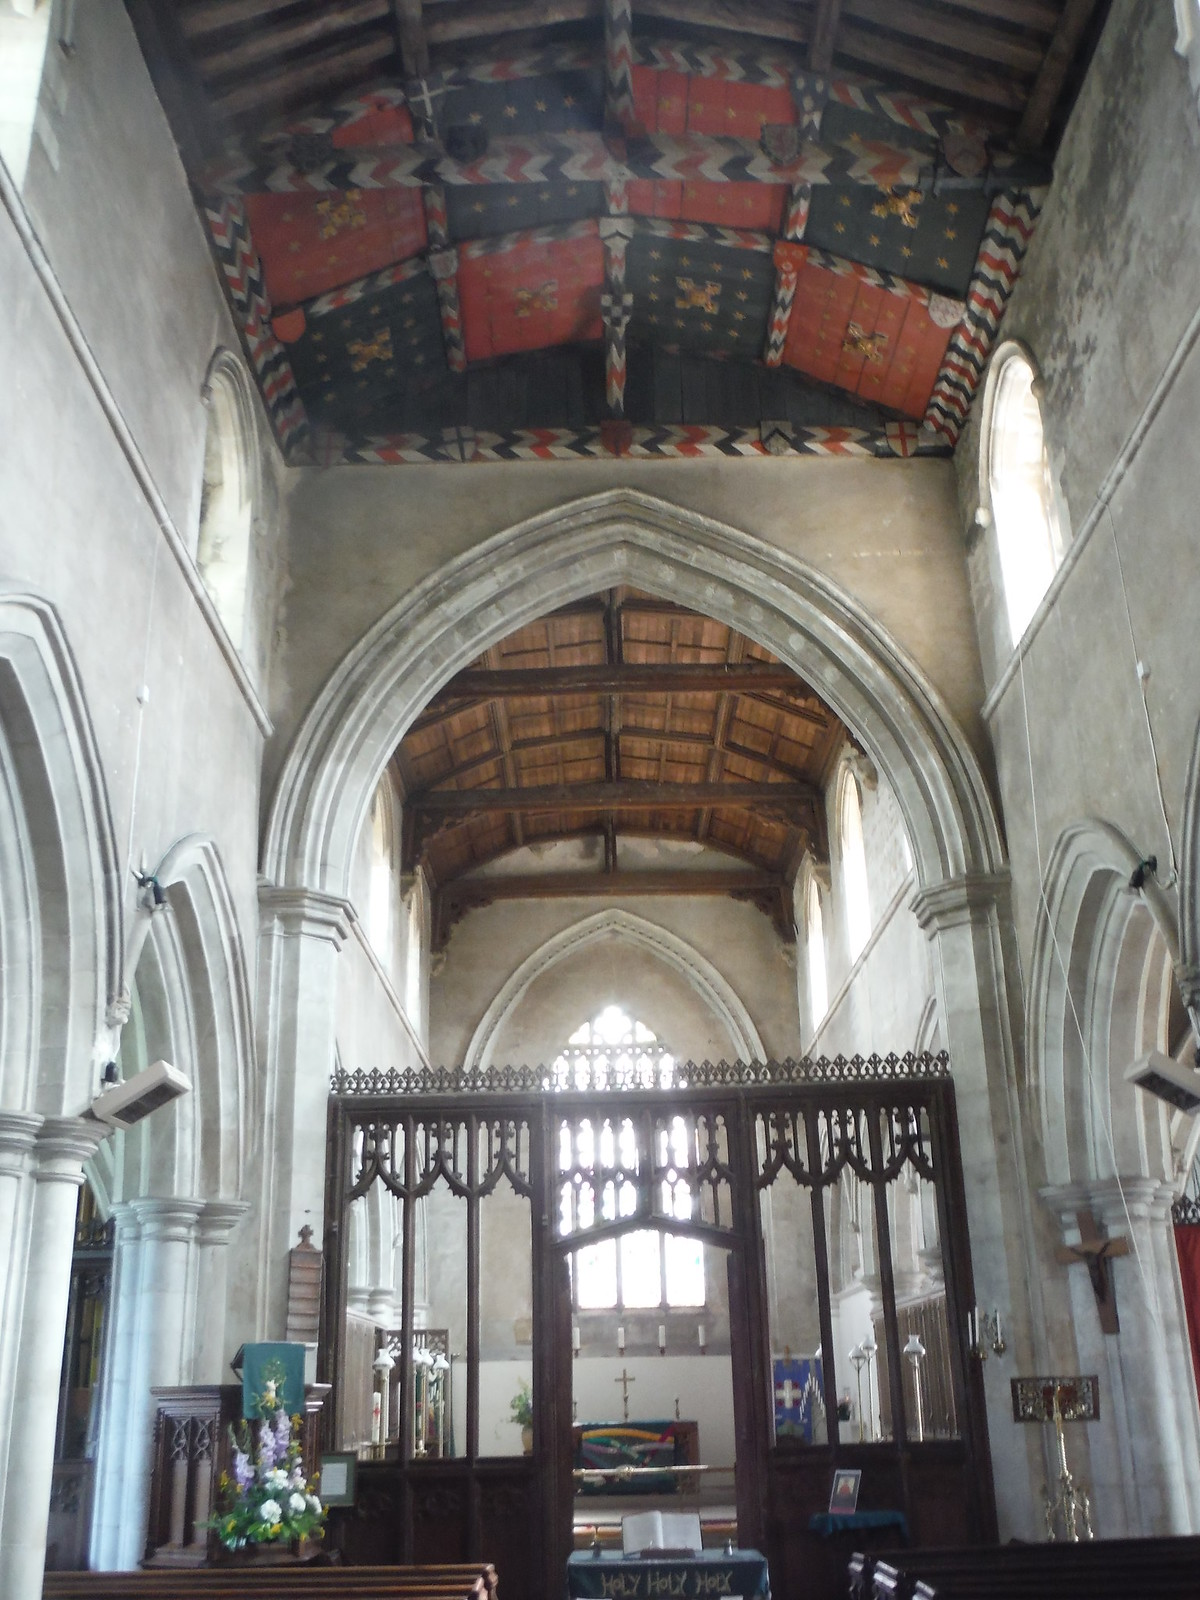 Nave and Rood Screen, All Saints' Church, Shillington SWC Walk 233 - Arlesey to Letchworth Garden City